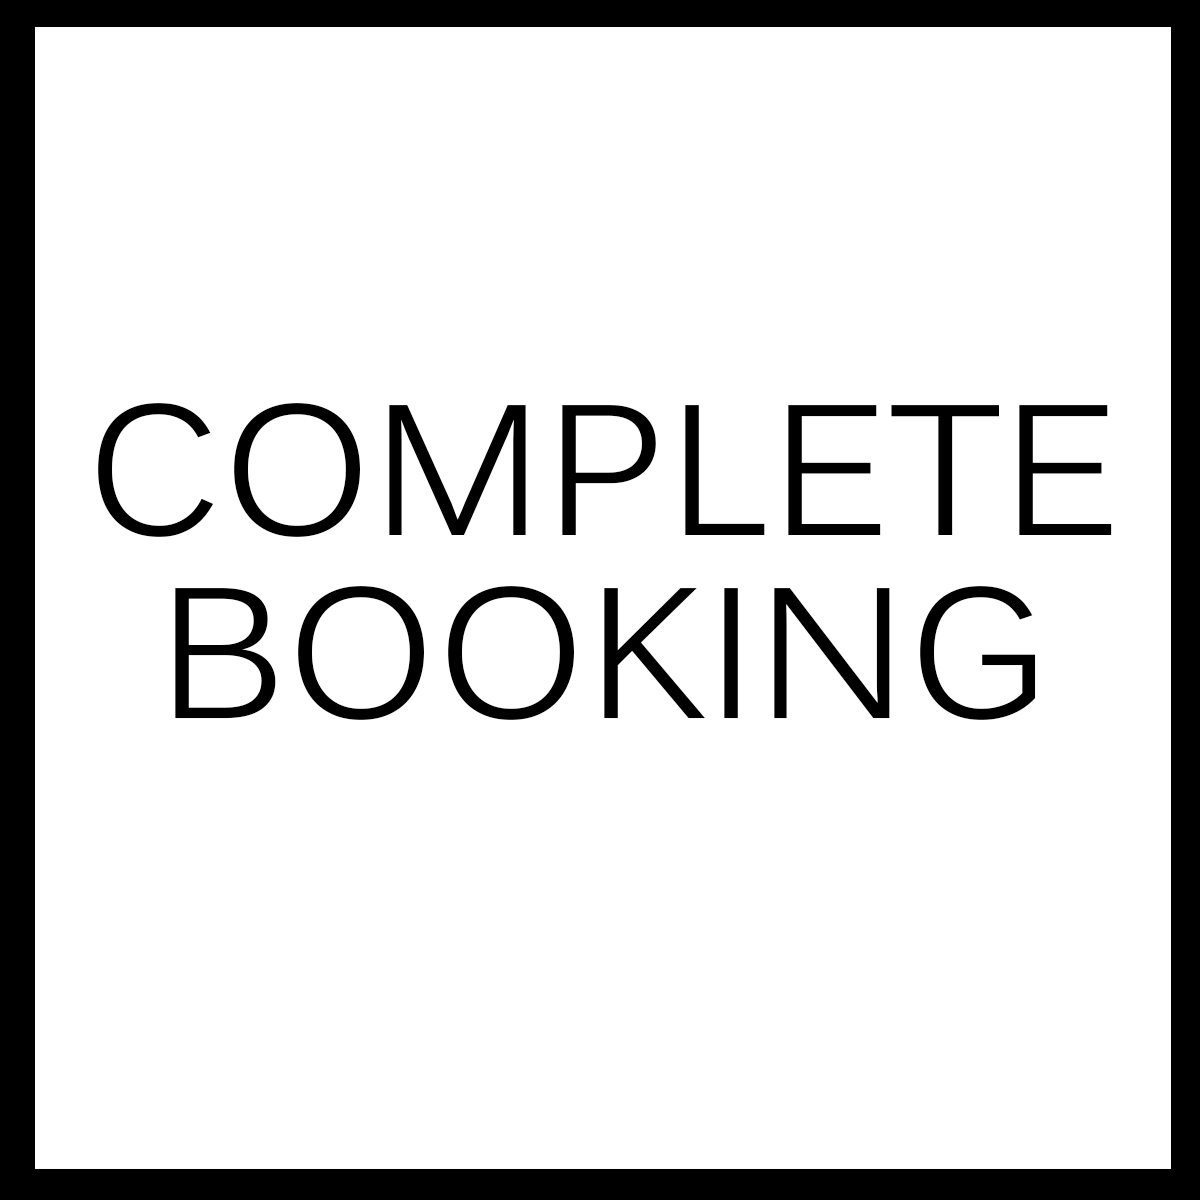 levuebookingcomplete